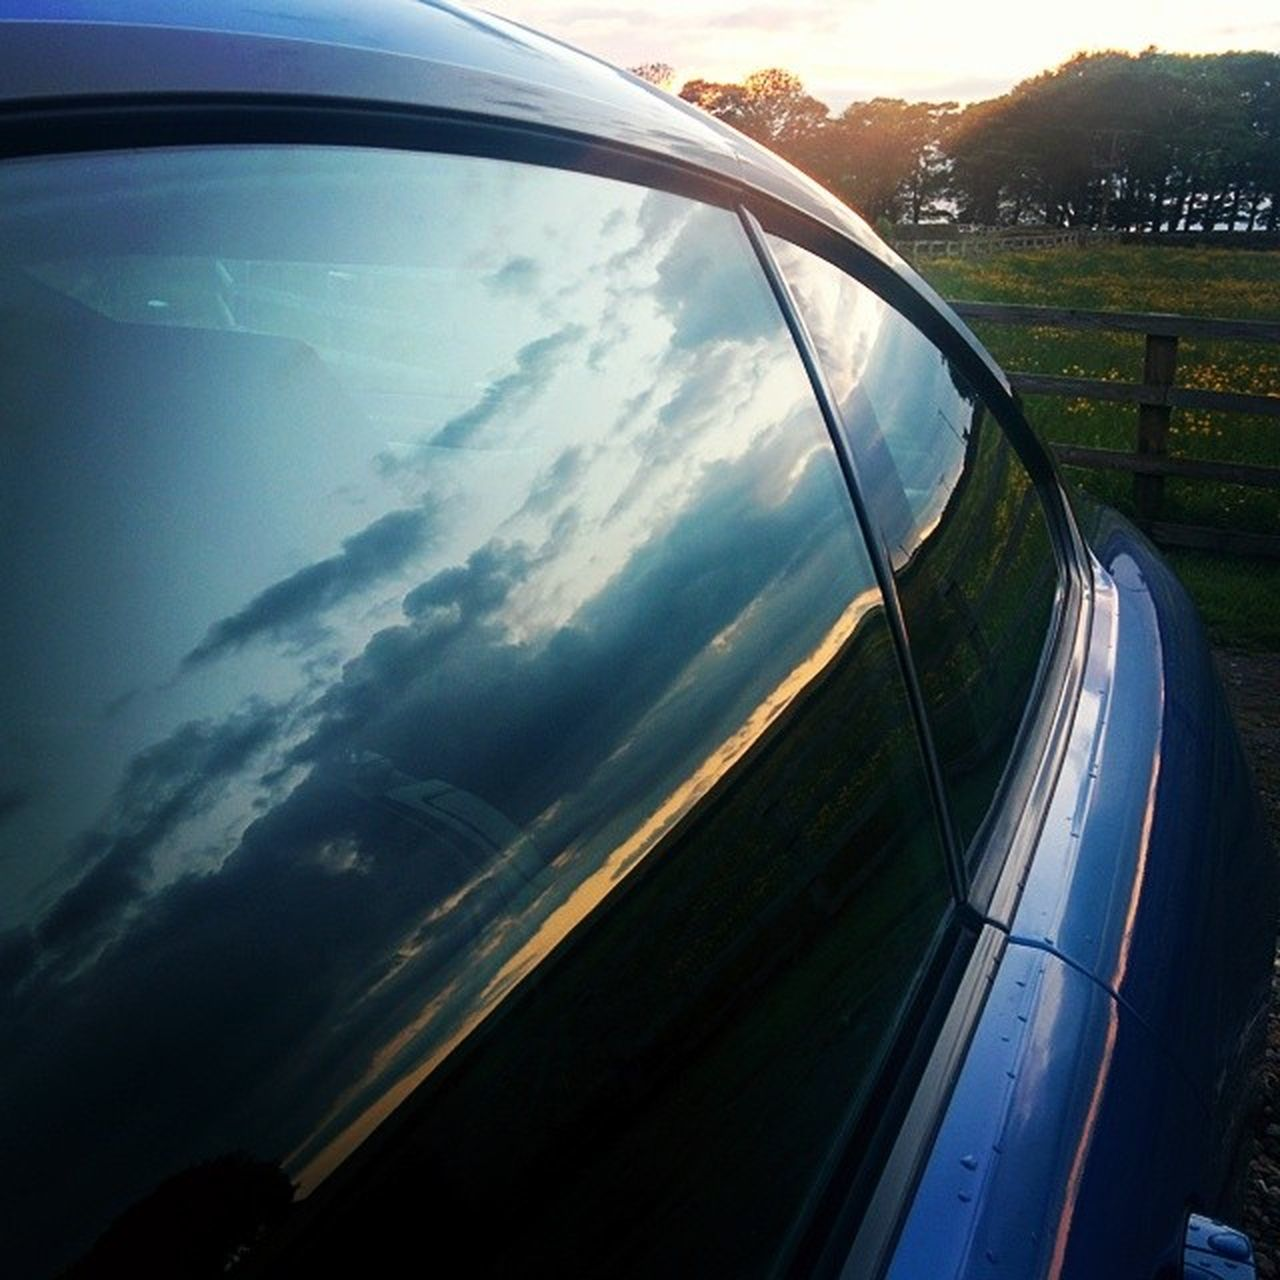 no people, transportation, window, sky, nature, day, outdoors, beauty in nature, close-up